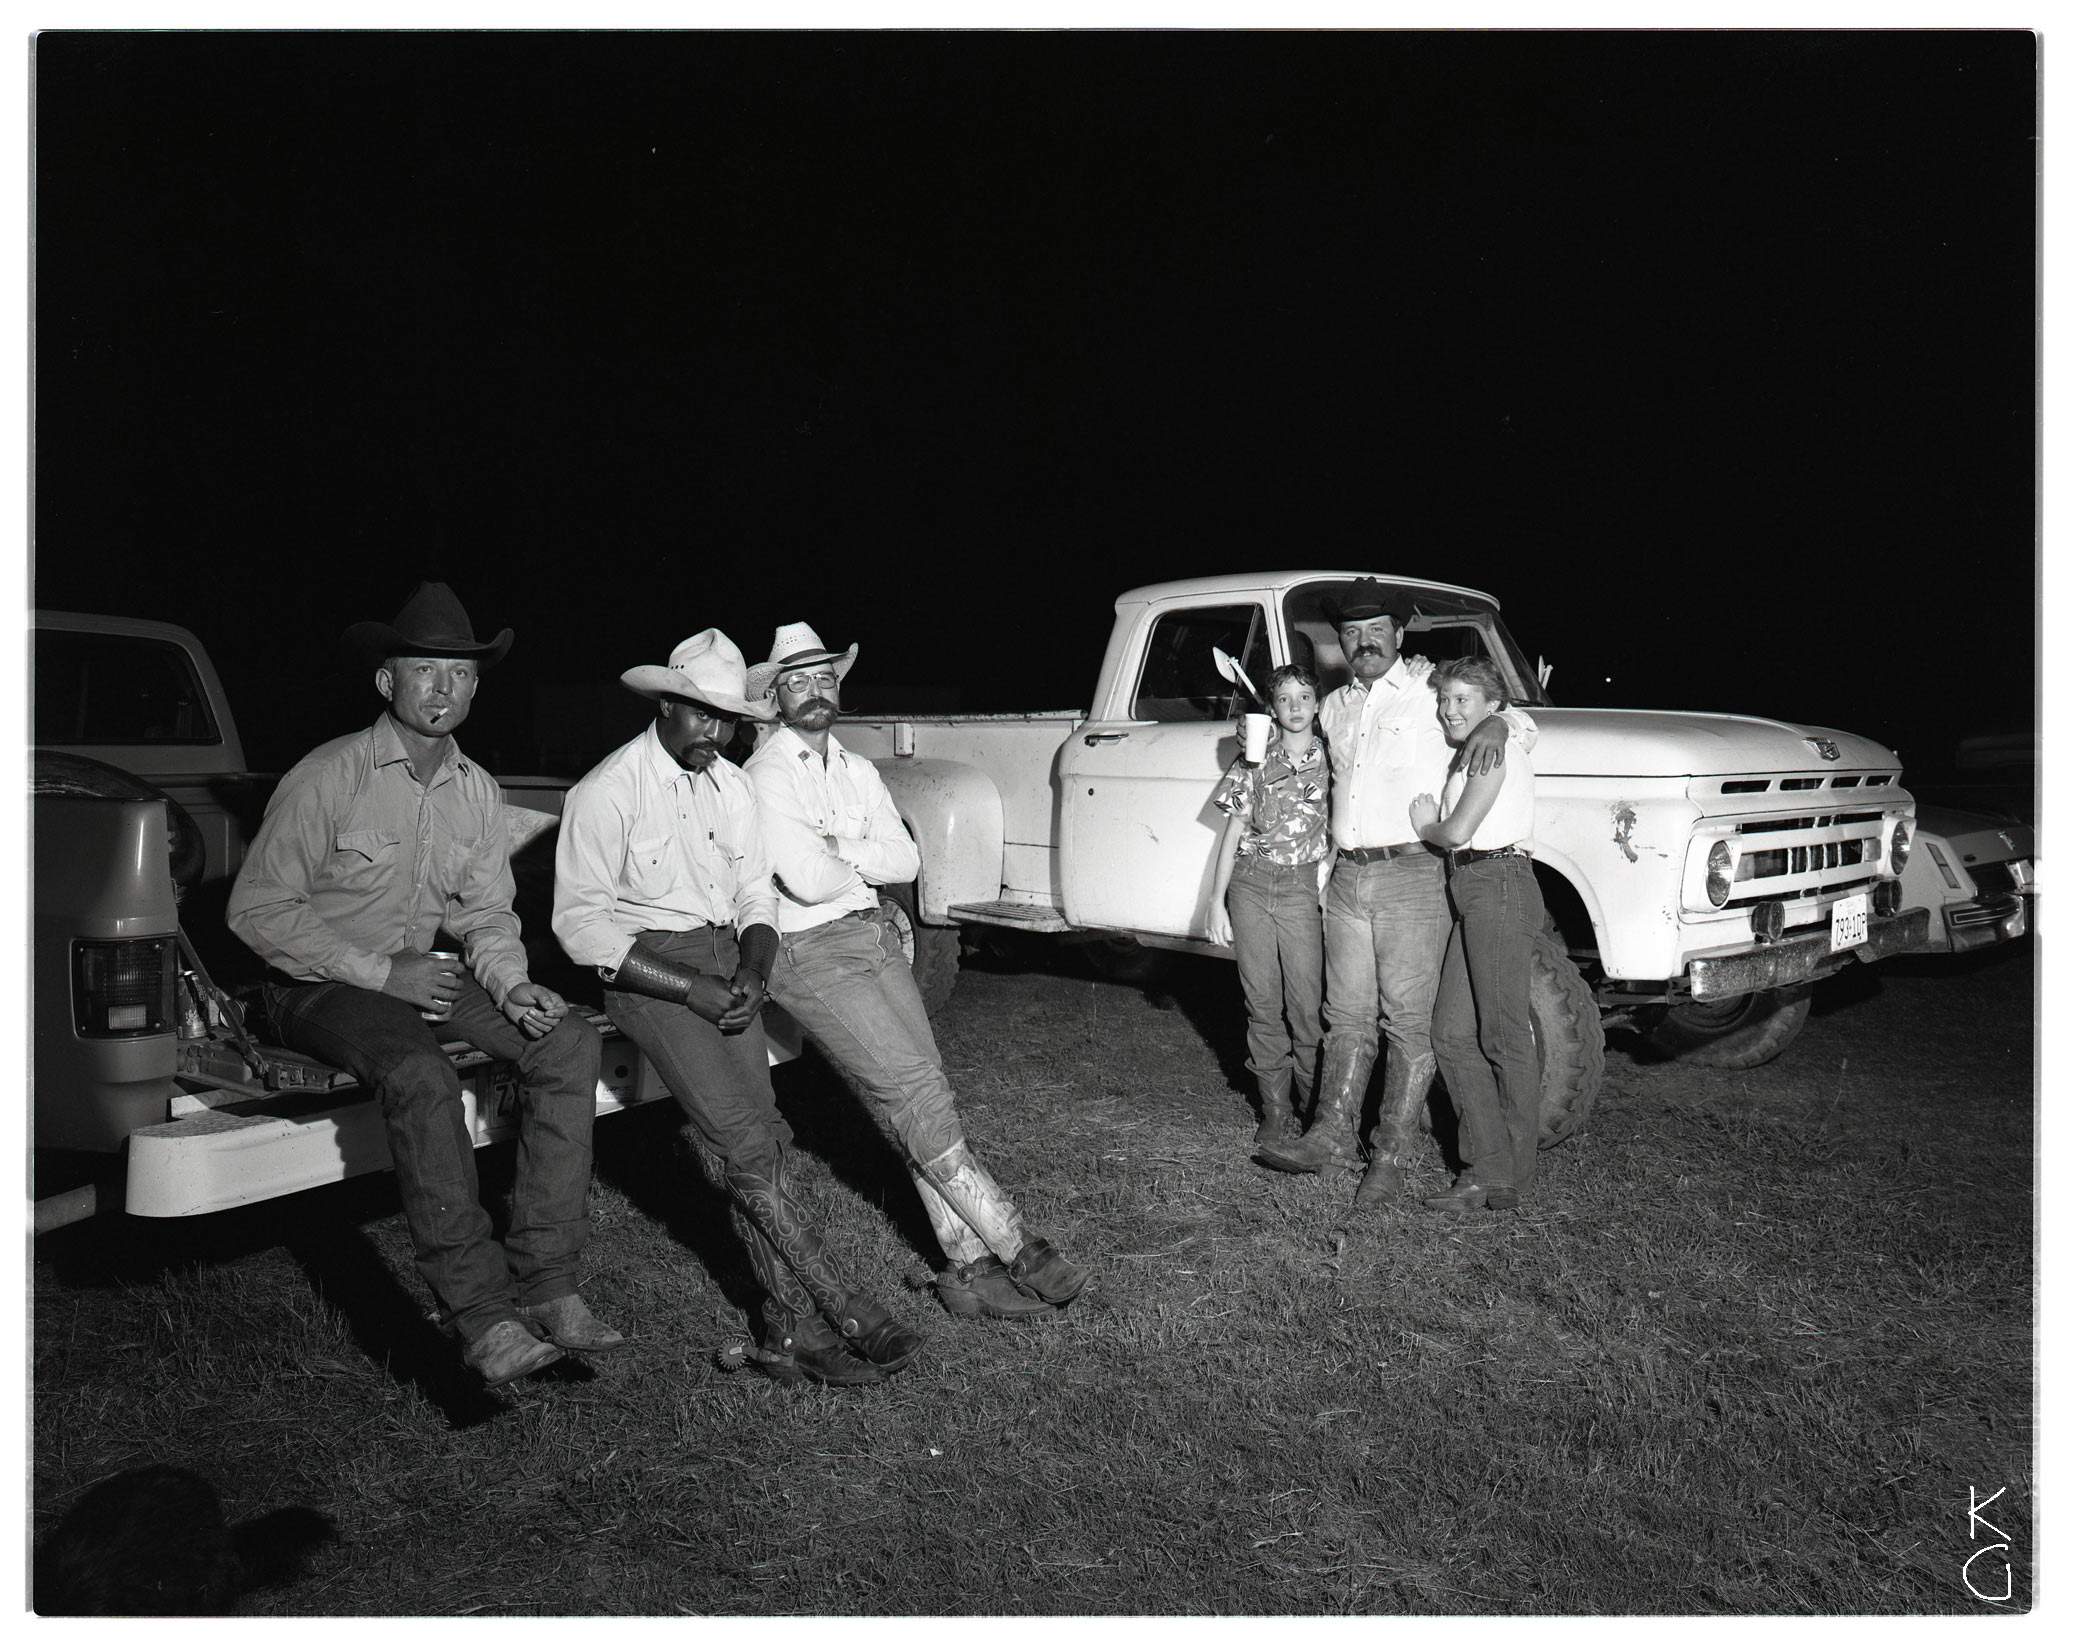 Late Night Hangout, The Panhandle 1987